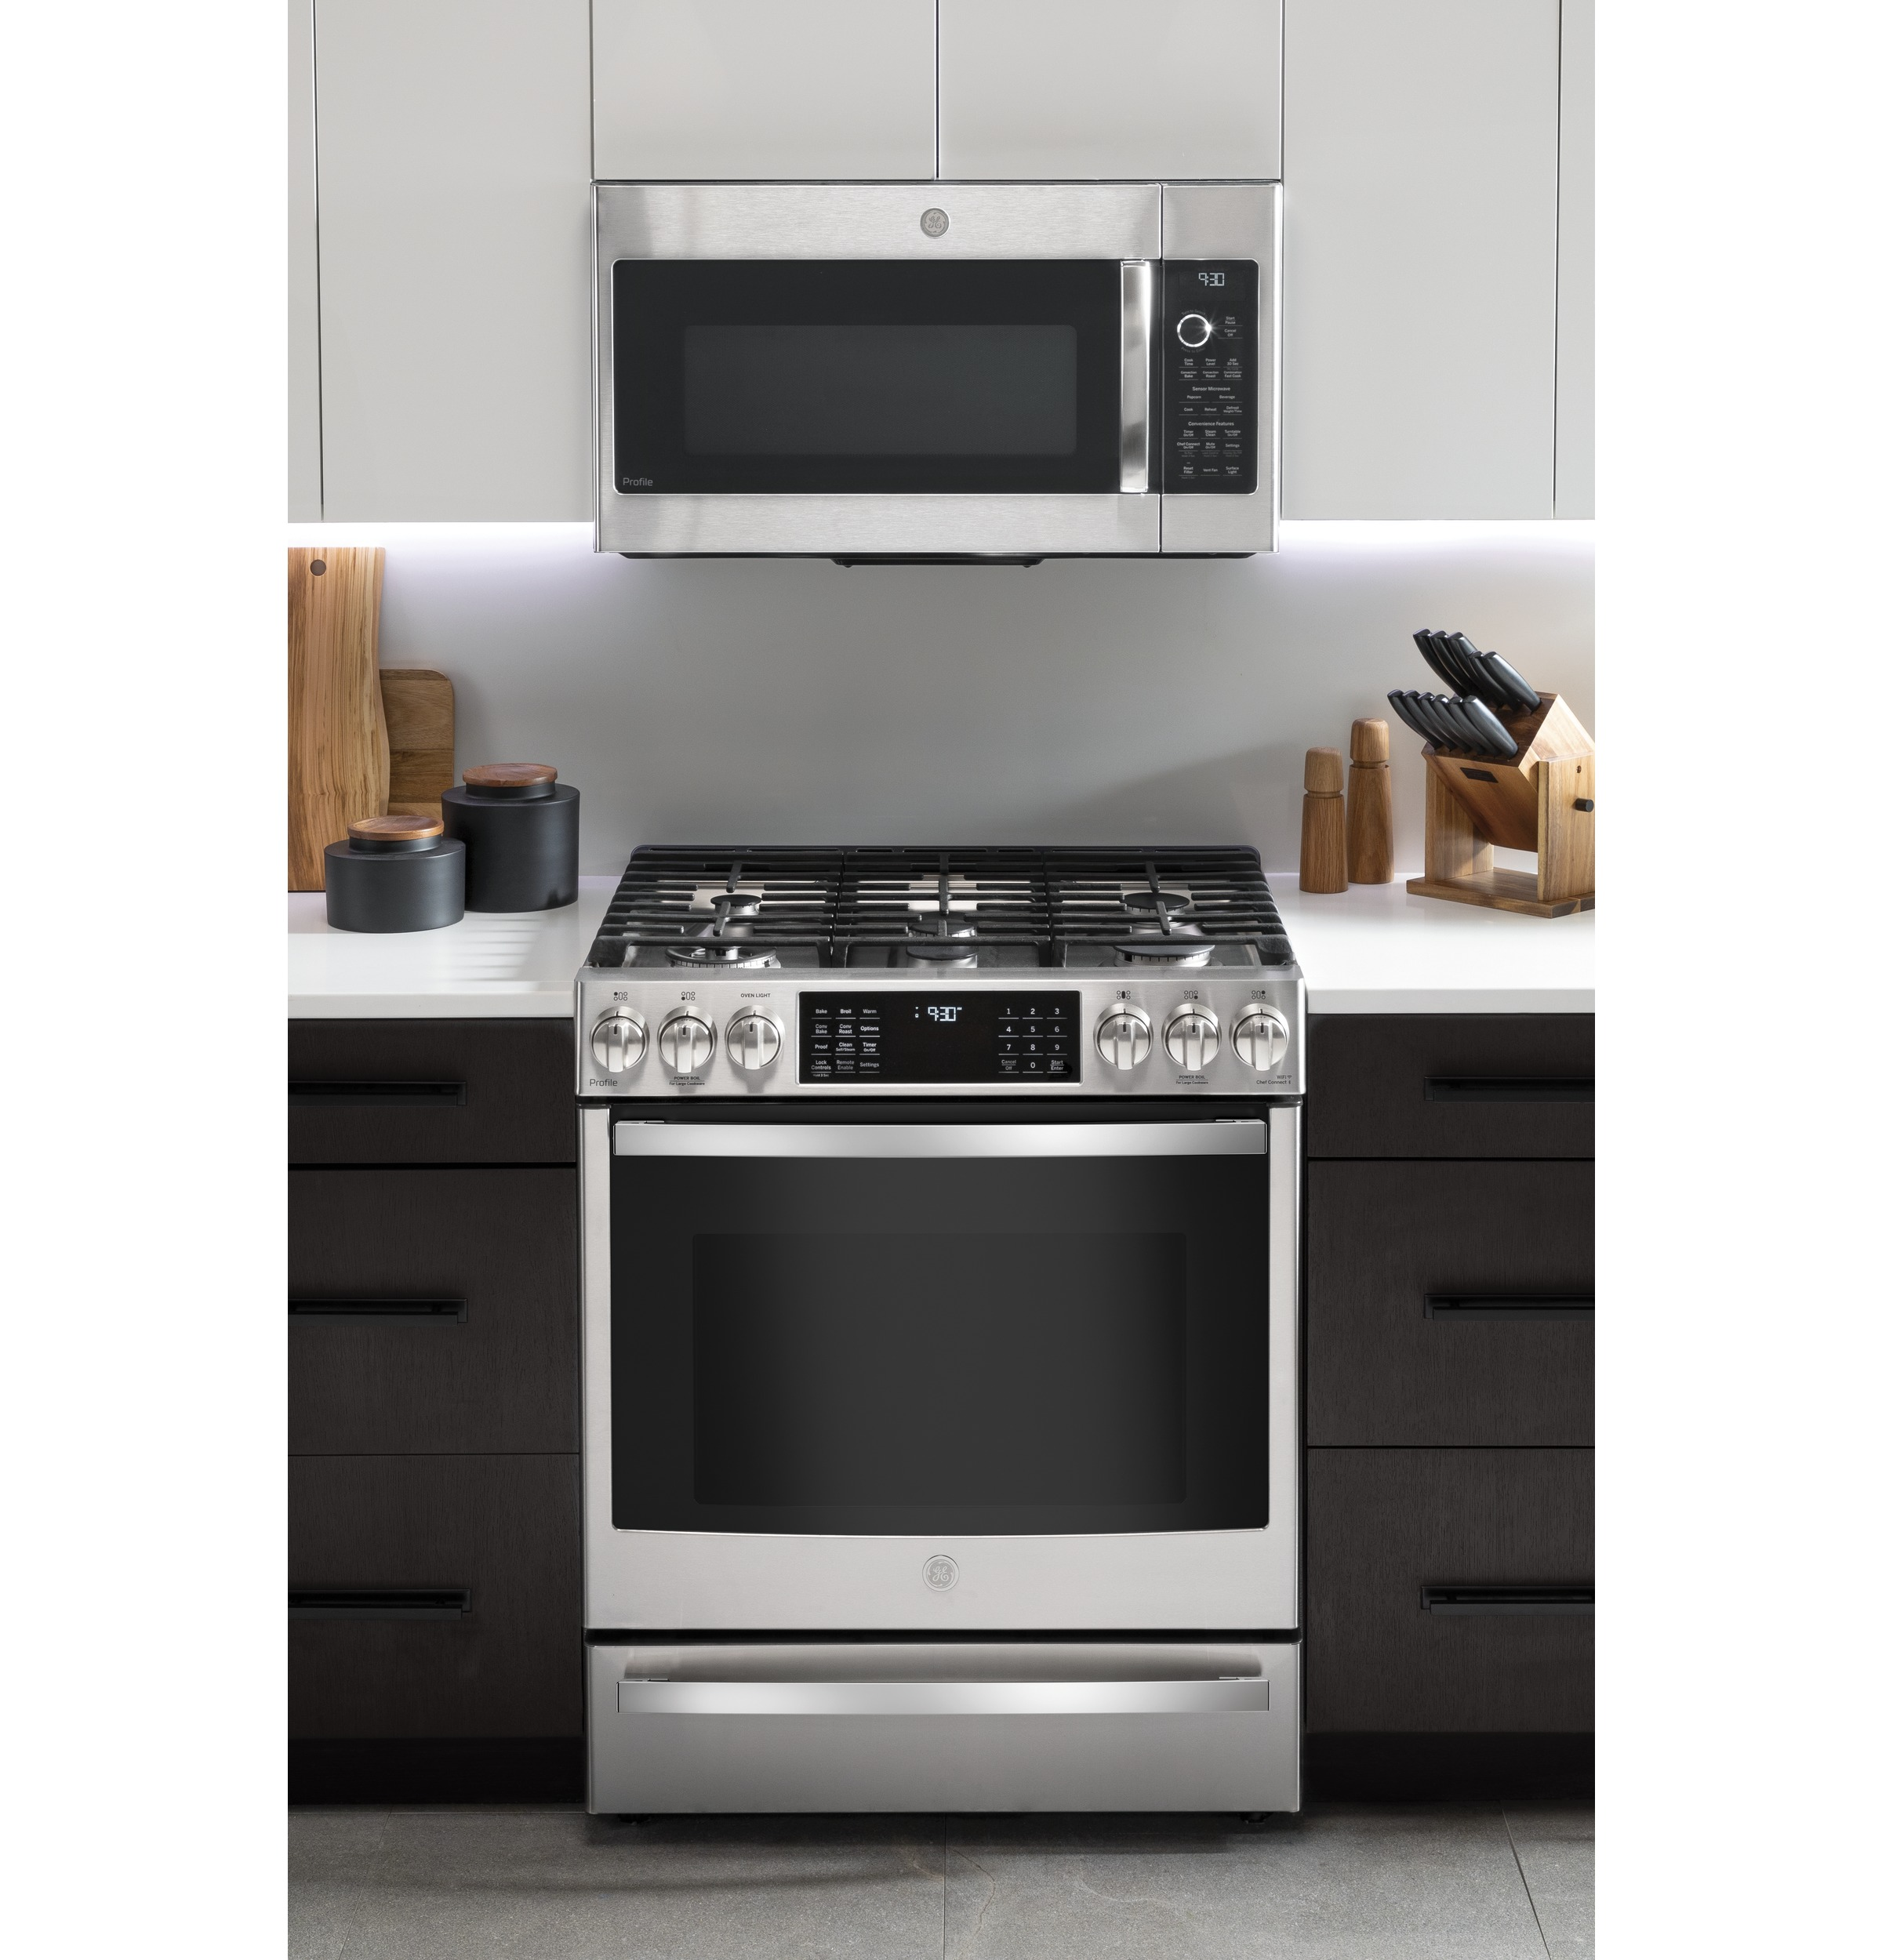 Model: PVM9179SKSS | GE Profile GE Profile™ 1.7 Cu. Ft. Convection Over-the-Range Microwave Oven